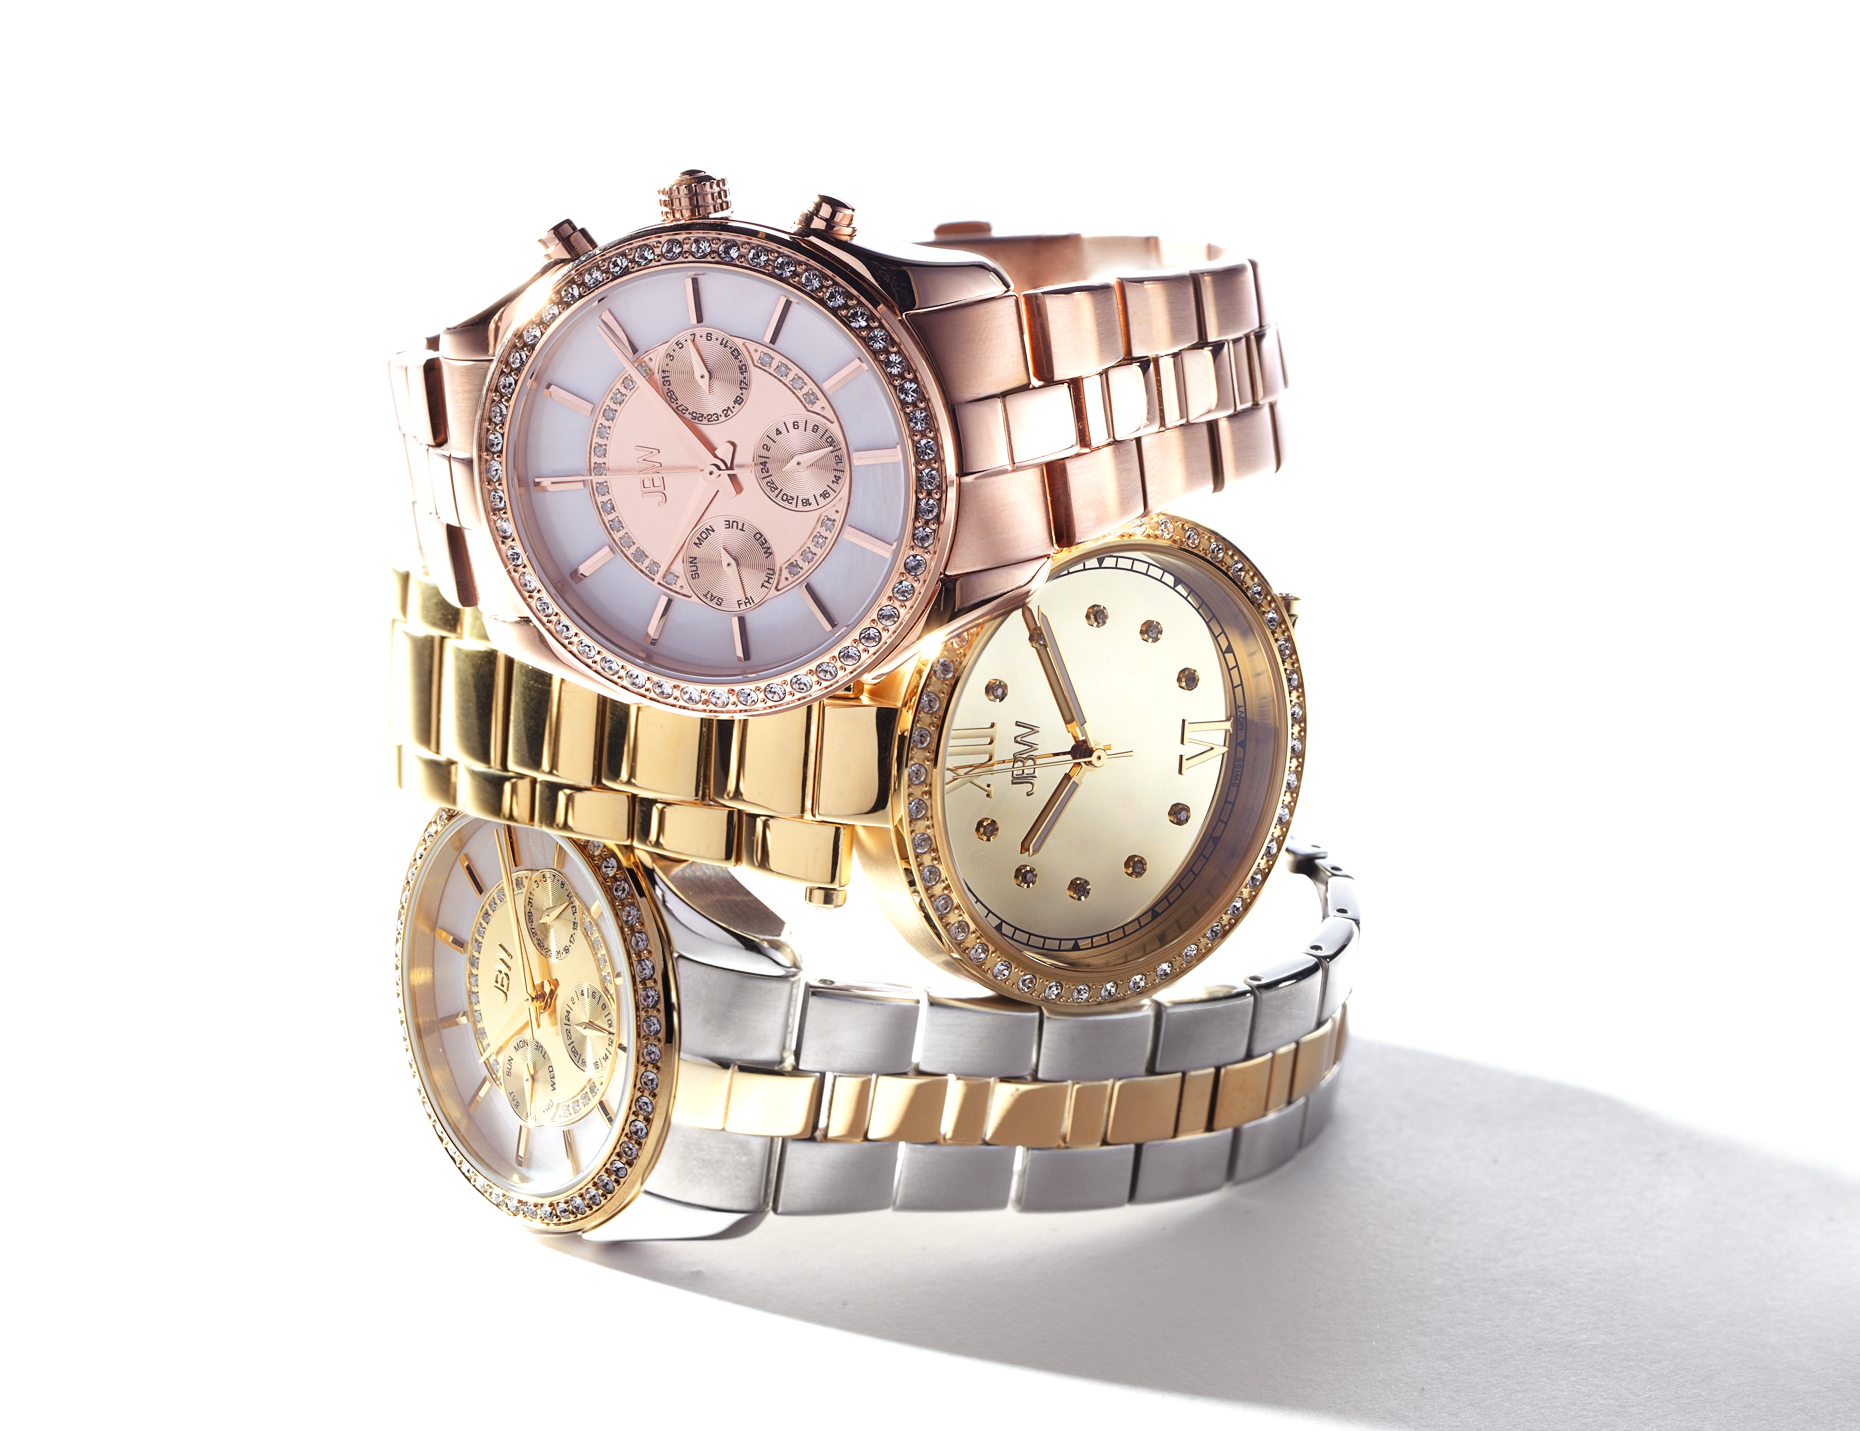 relojes s from gold watch item in jewellery feminino luxury elegant dress jewelry alloy ladies set wristwatches mujer bracelet popular relogio watches cacaxi quartz wristwatch women